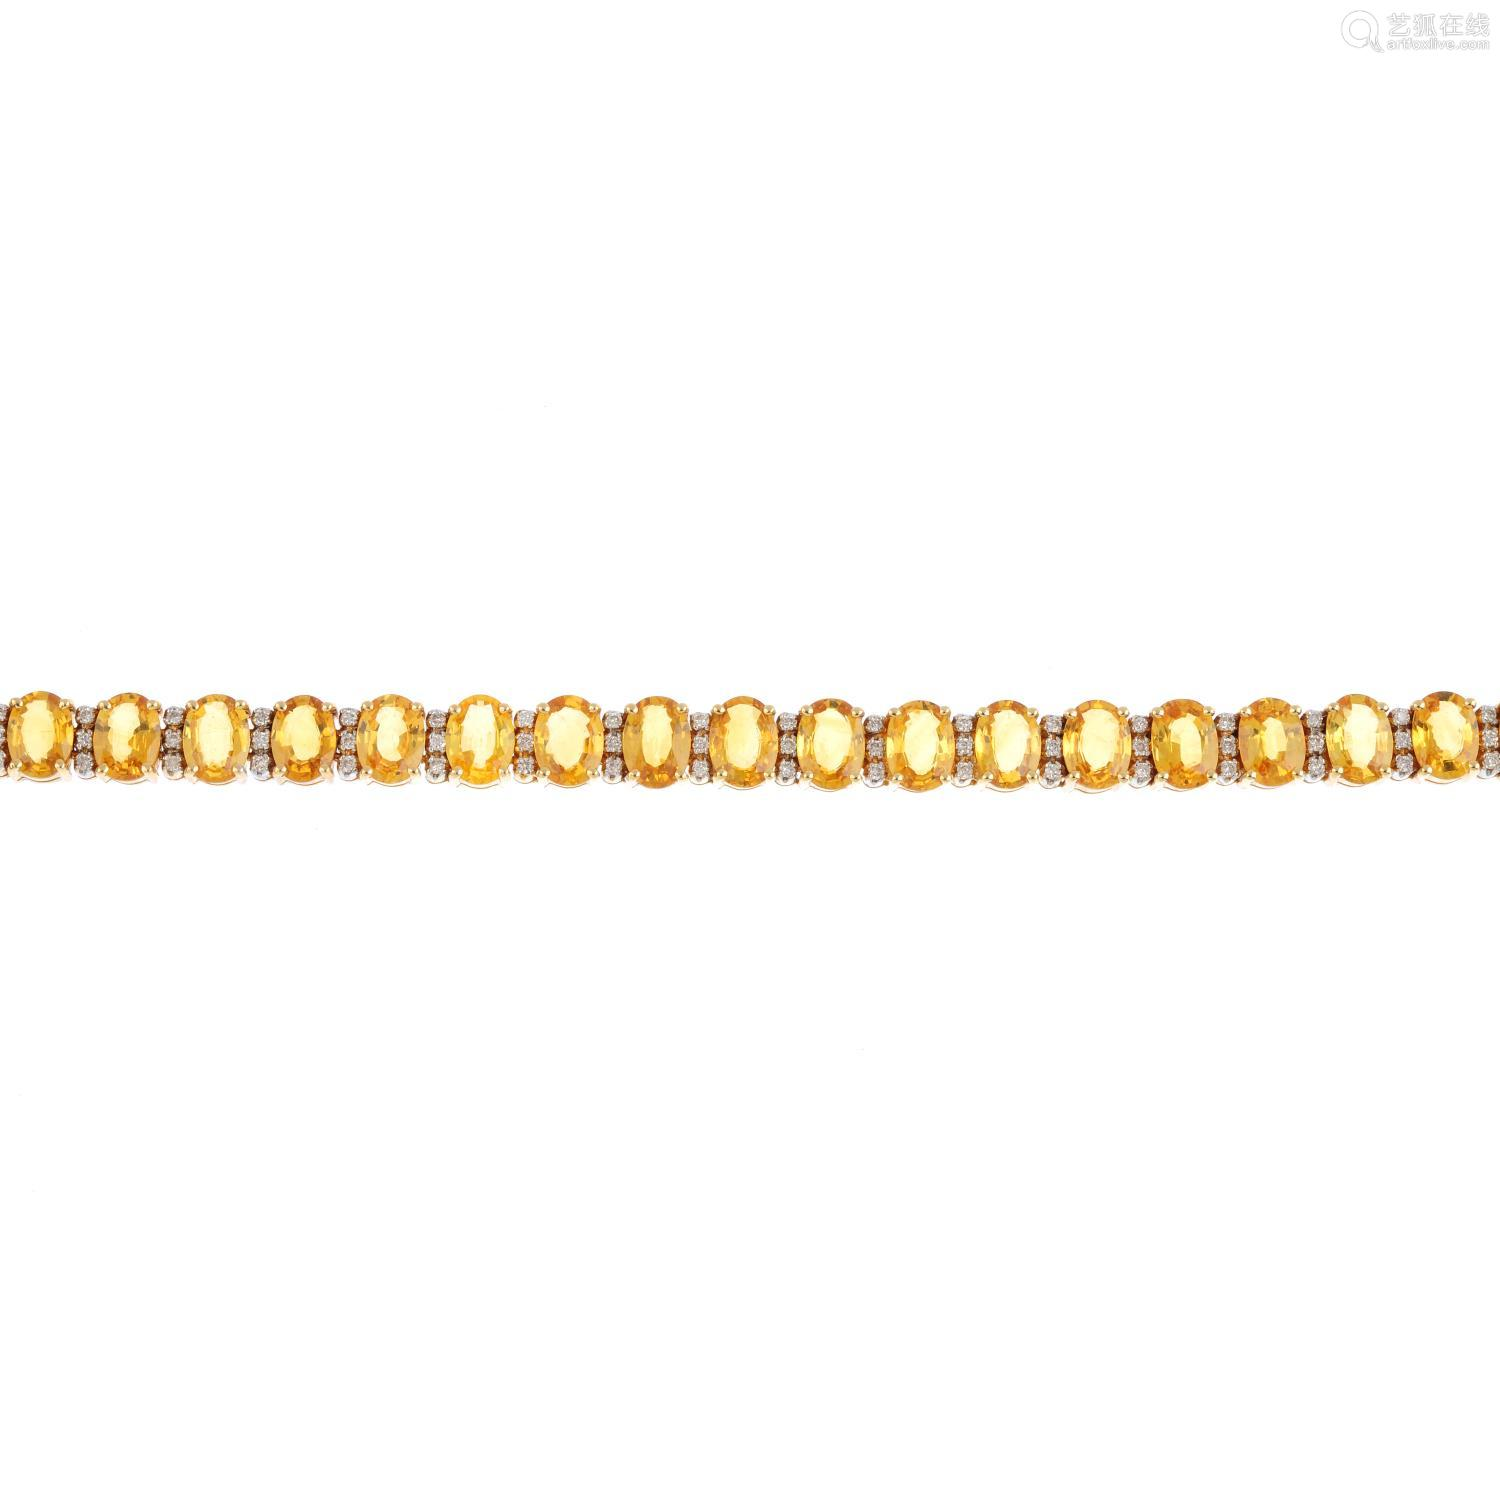 A sapphire and diamond bracelet. Designed as a series of oval-shape yellow sapphires, with